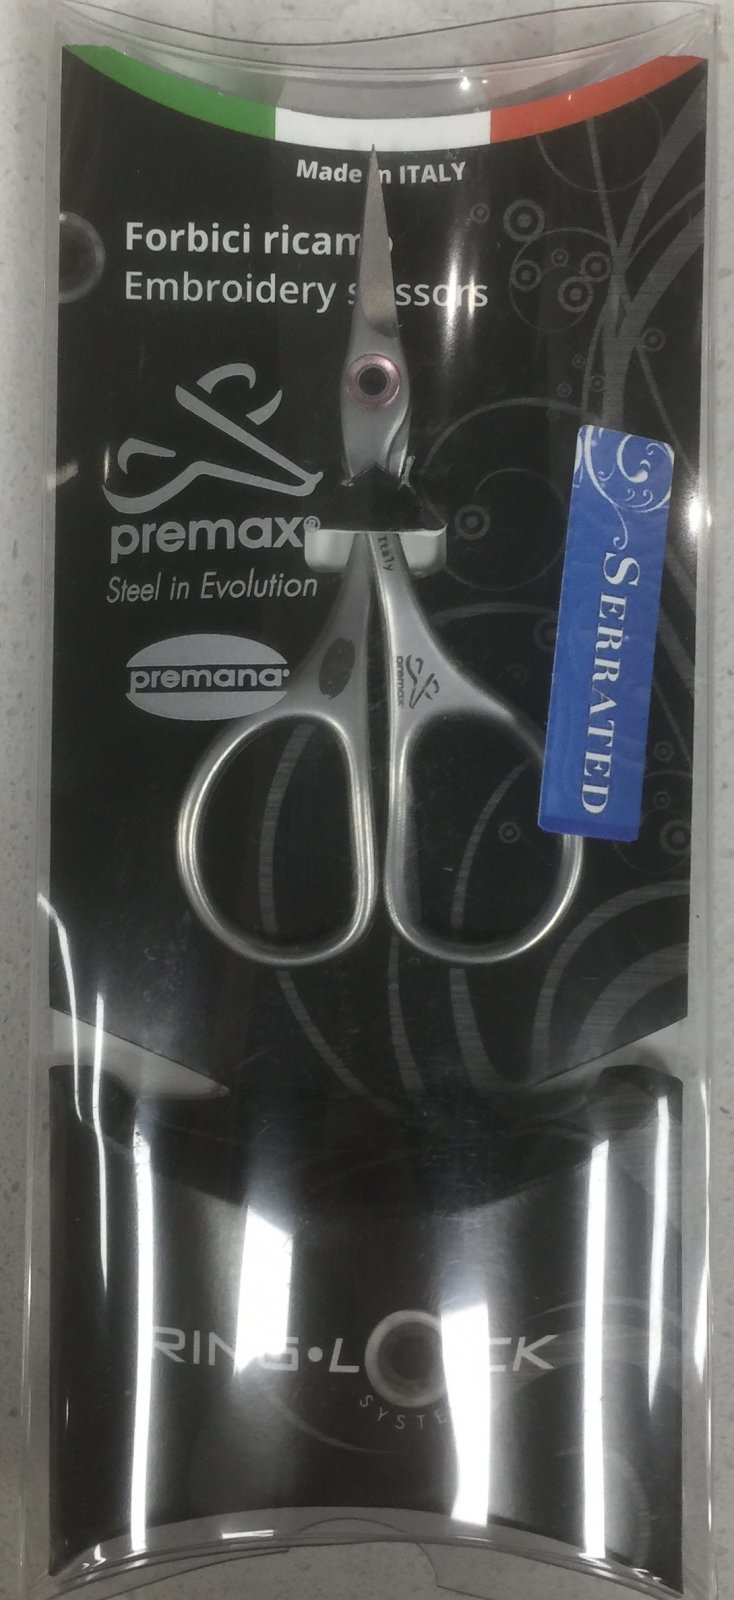 3 3/4 Embroidery Scissors RingLock - serrated